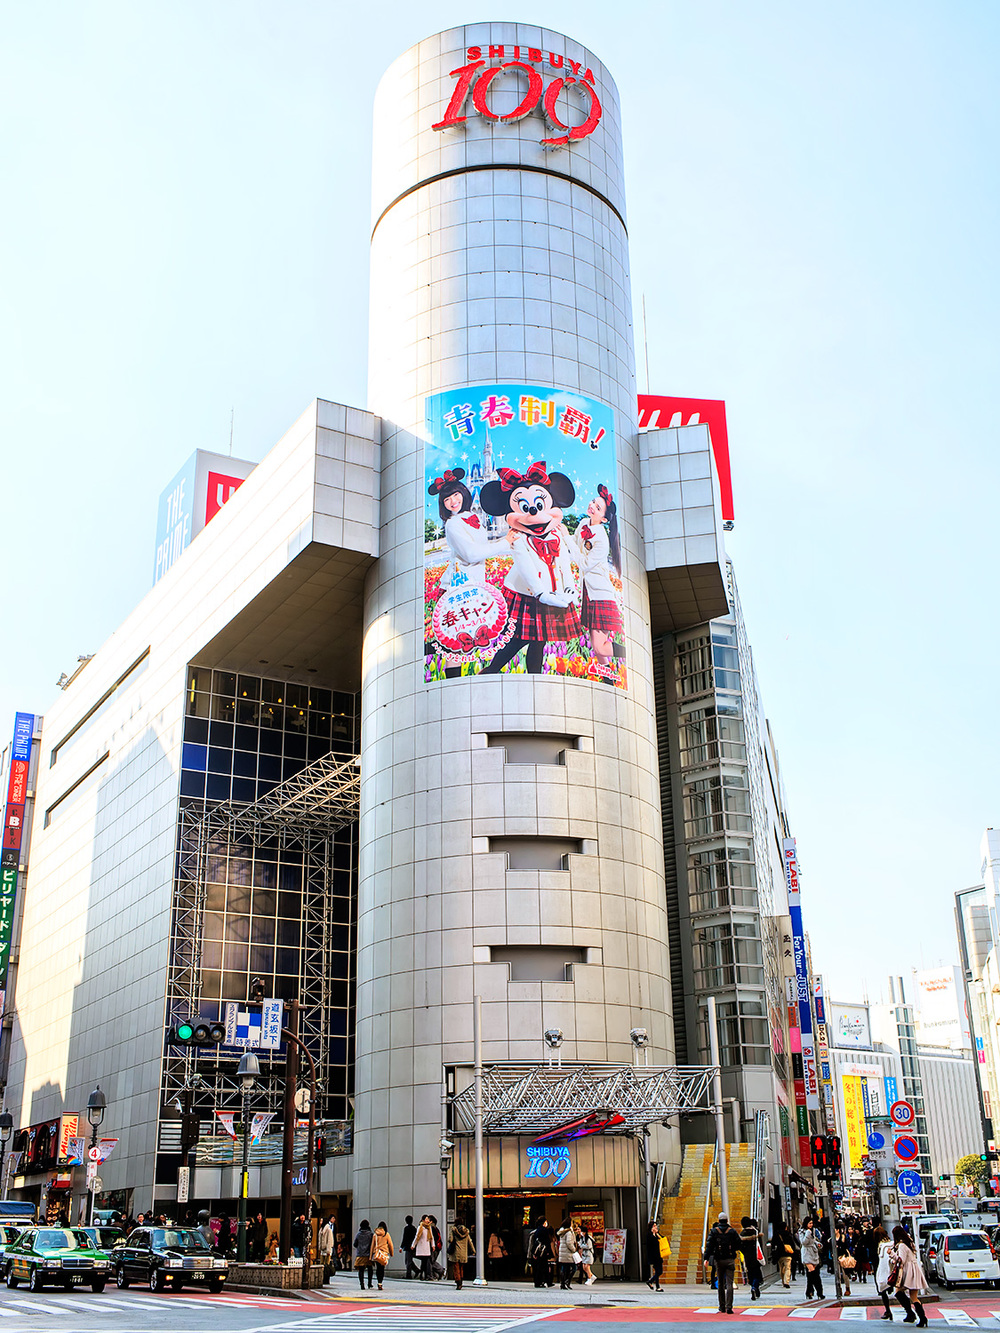 Shibuya109 shopping center (Photo courtesy of tokyo-fashion.tumblr.com)